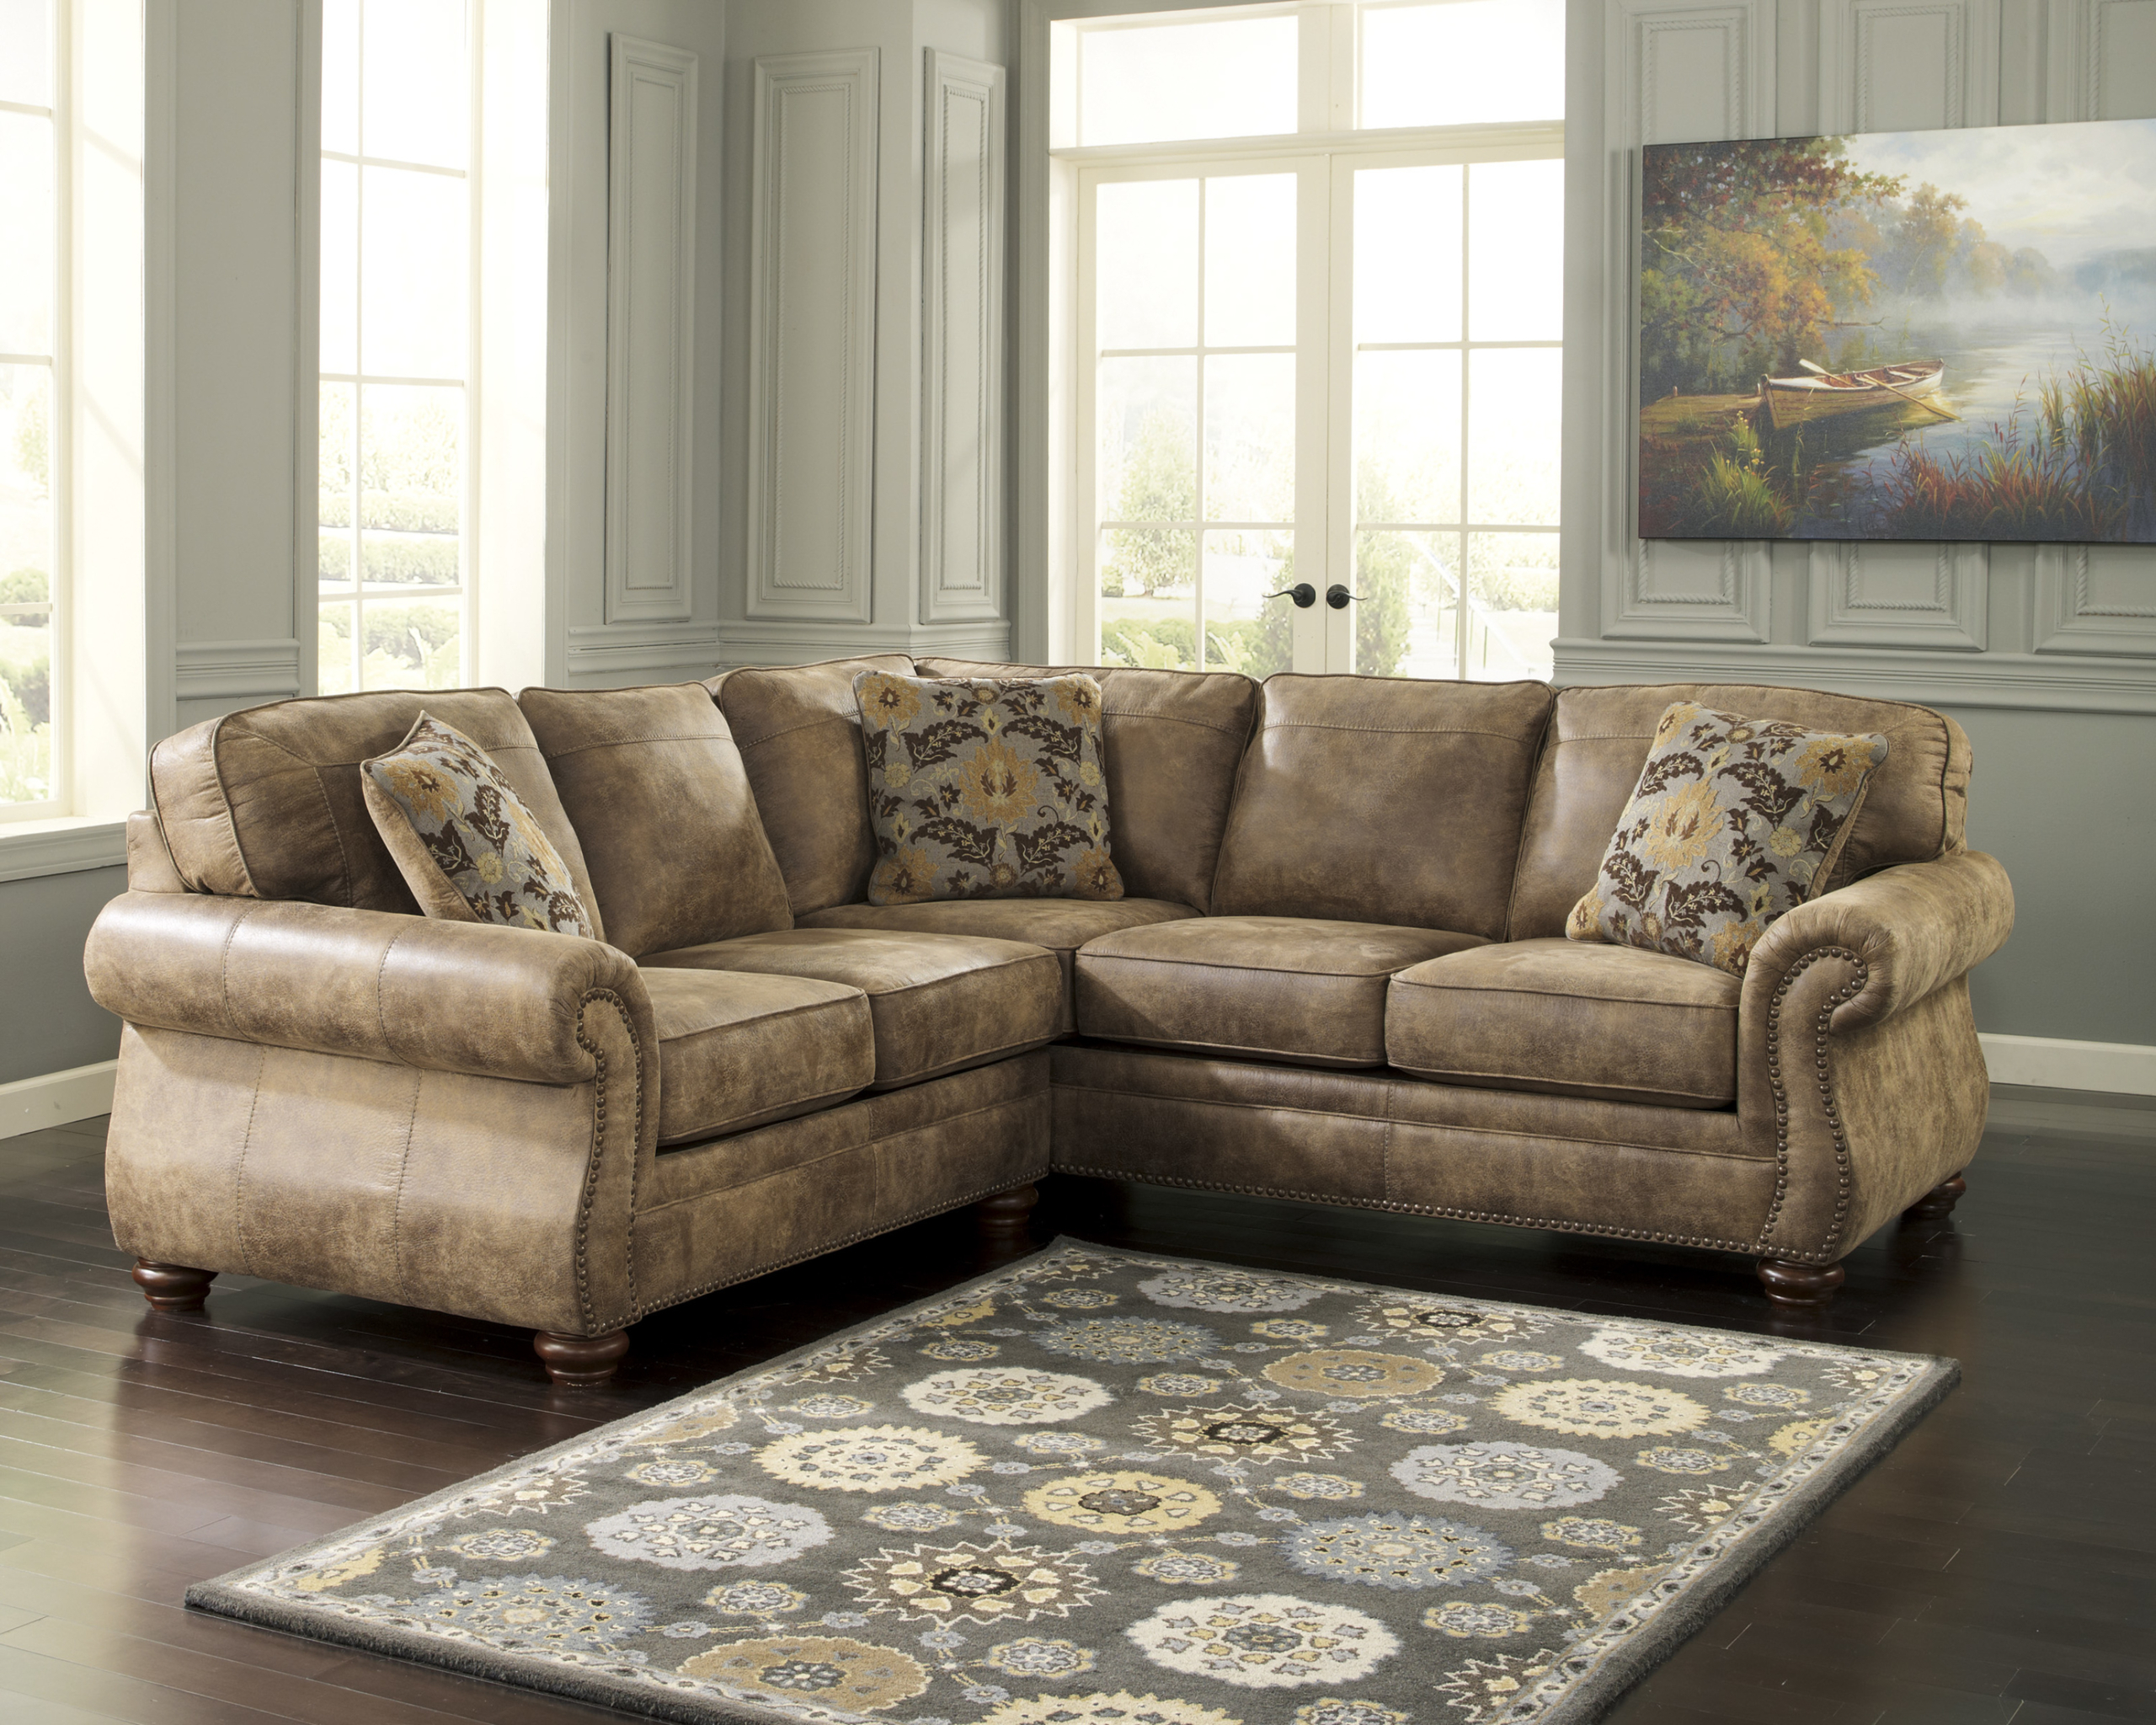 small leather sectional sofa ideas on